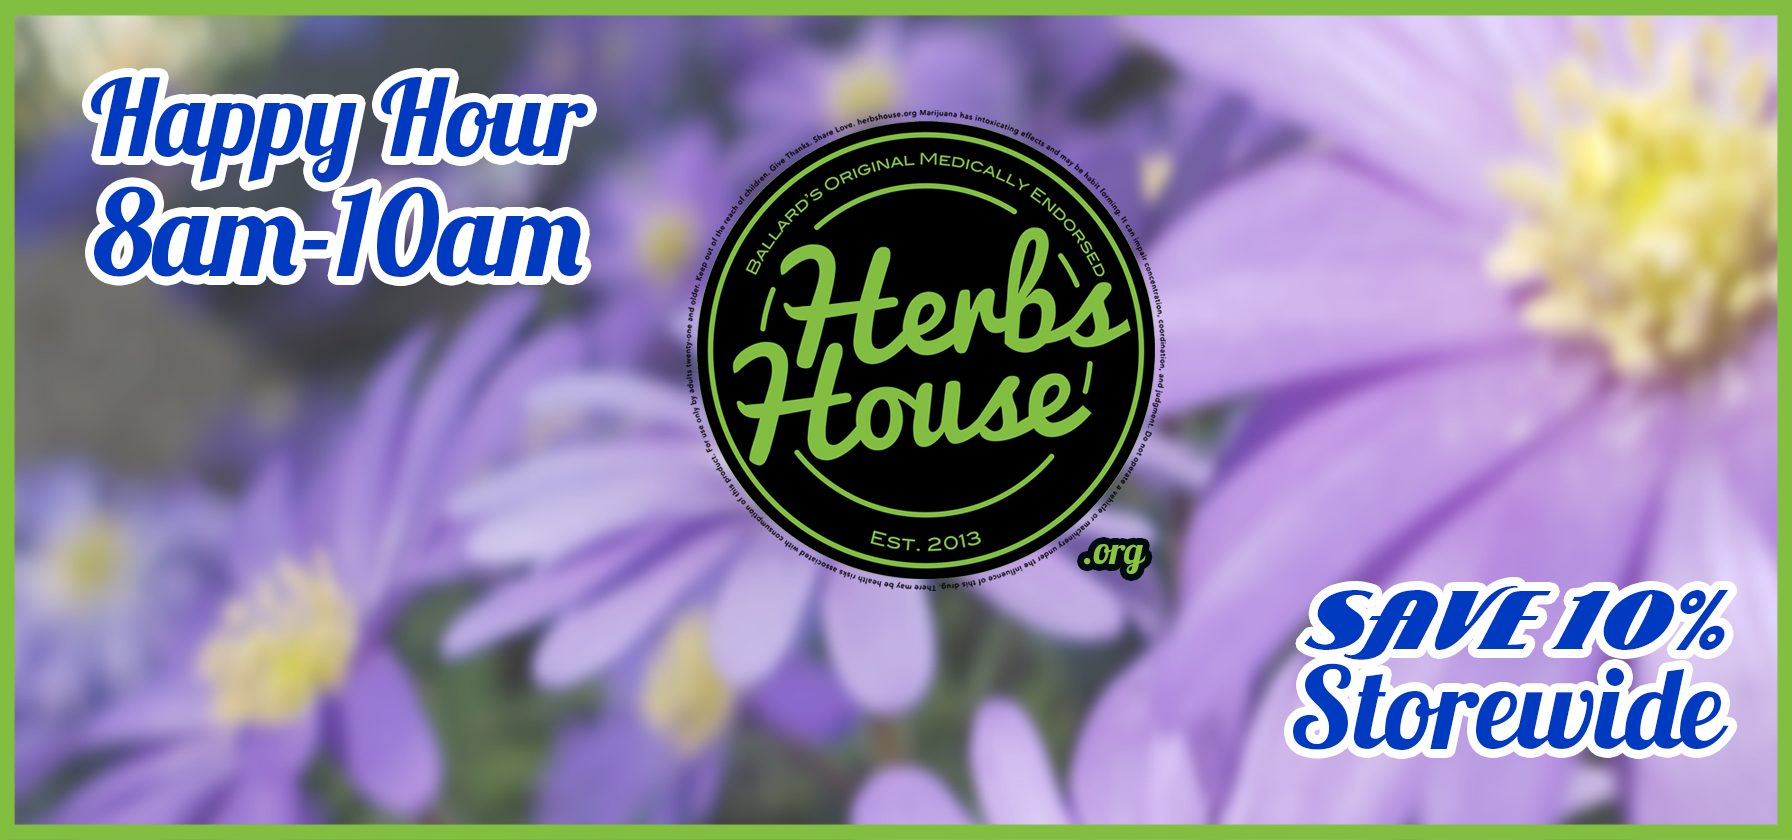 Happy Hour 8-10am Every Day at Herbs